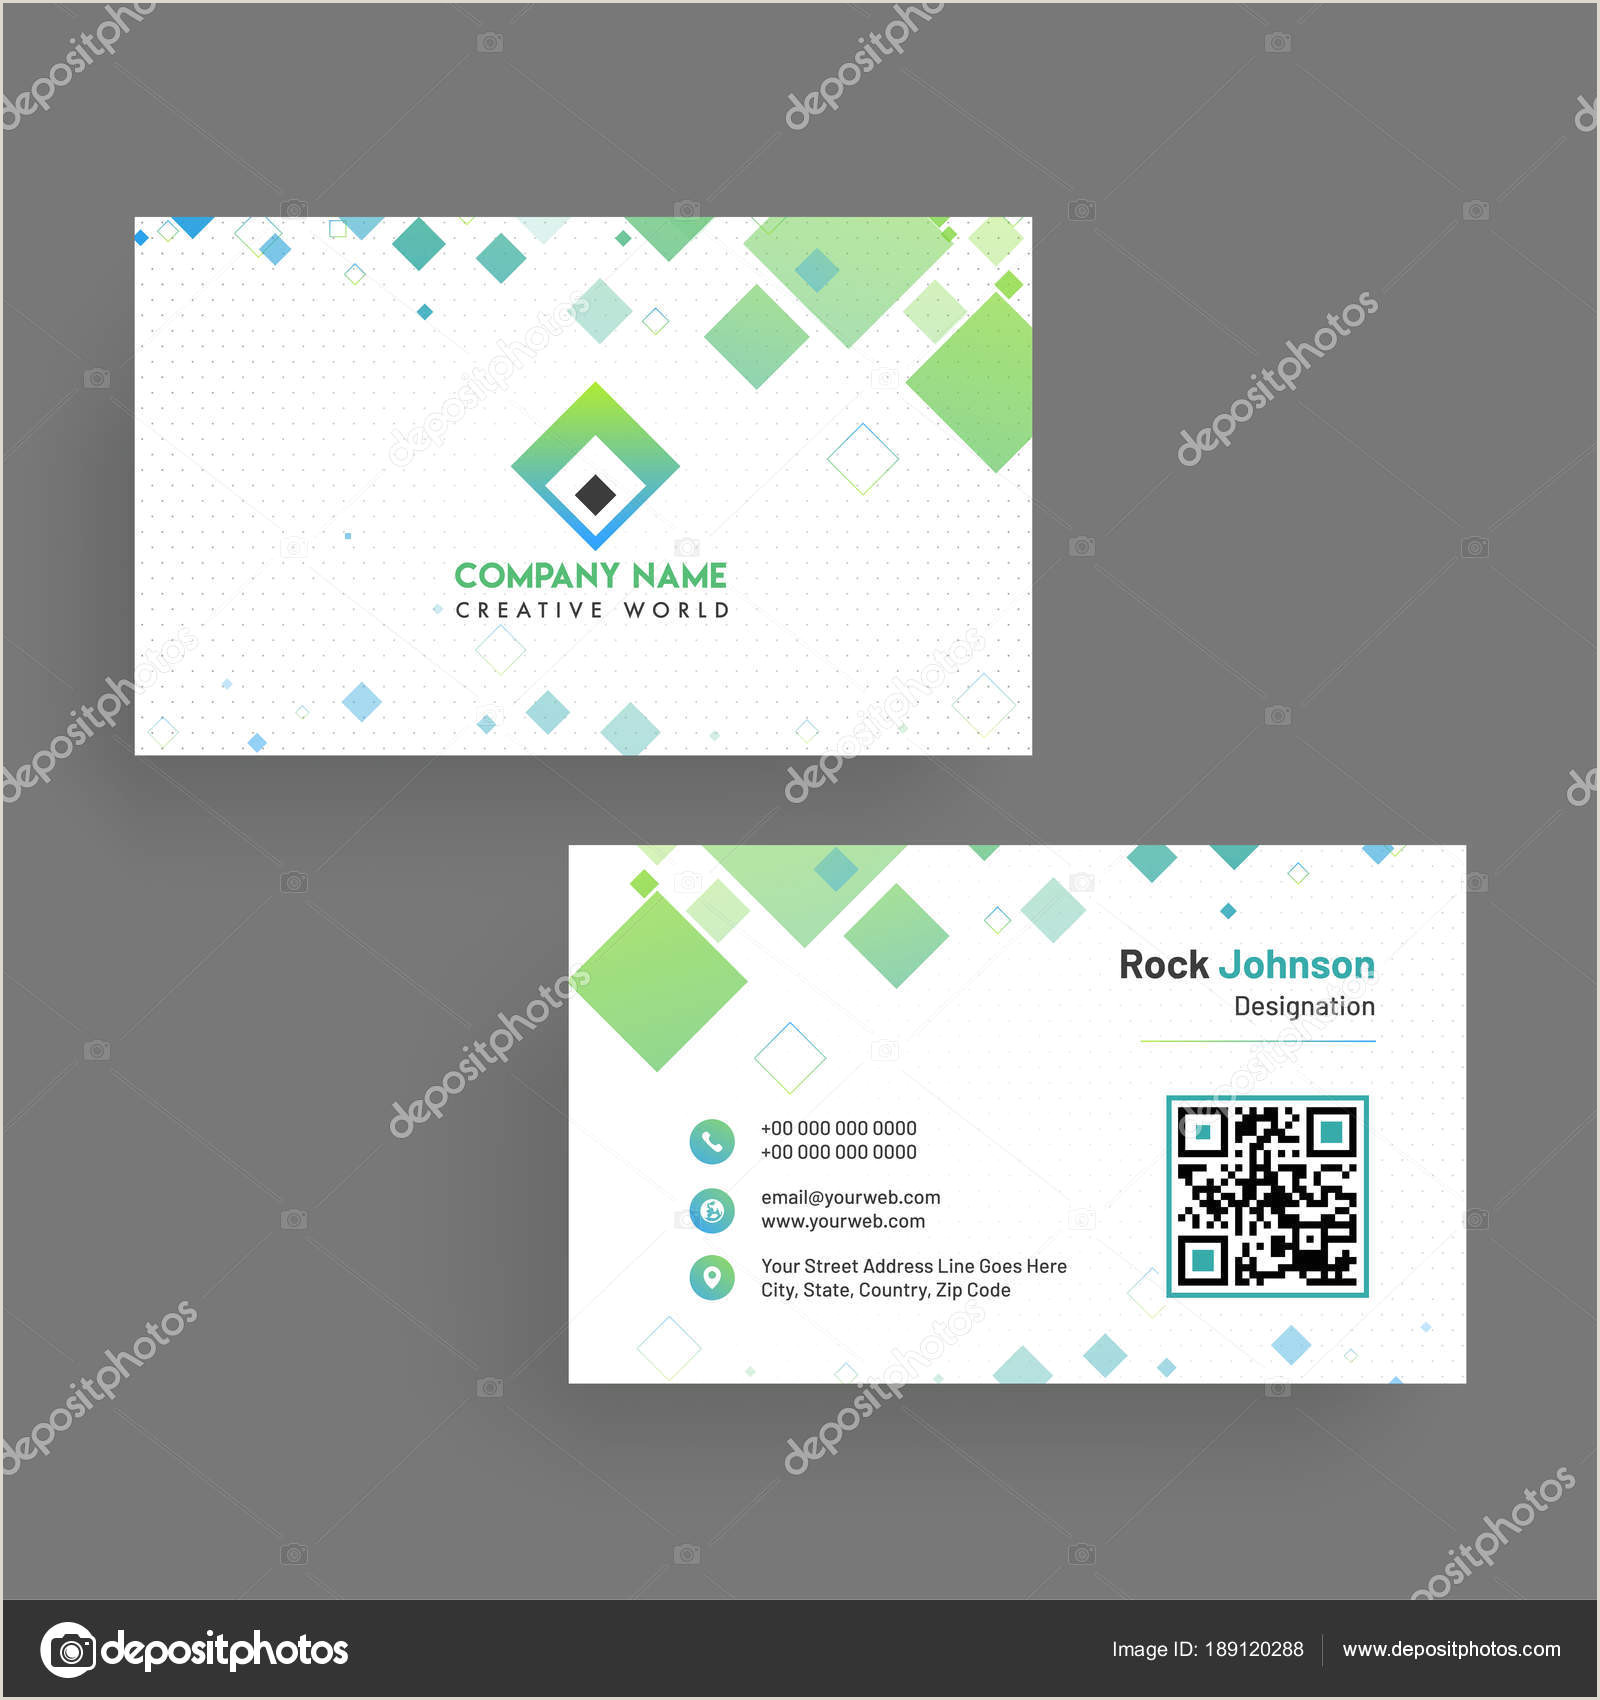 Unique Horizontal Business Cards Horizontal Business Card With Front And Back Presentation